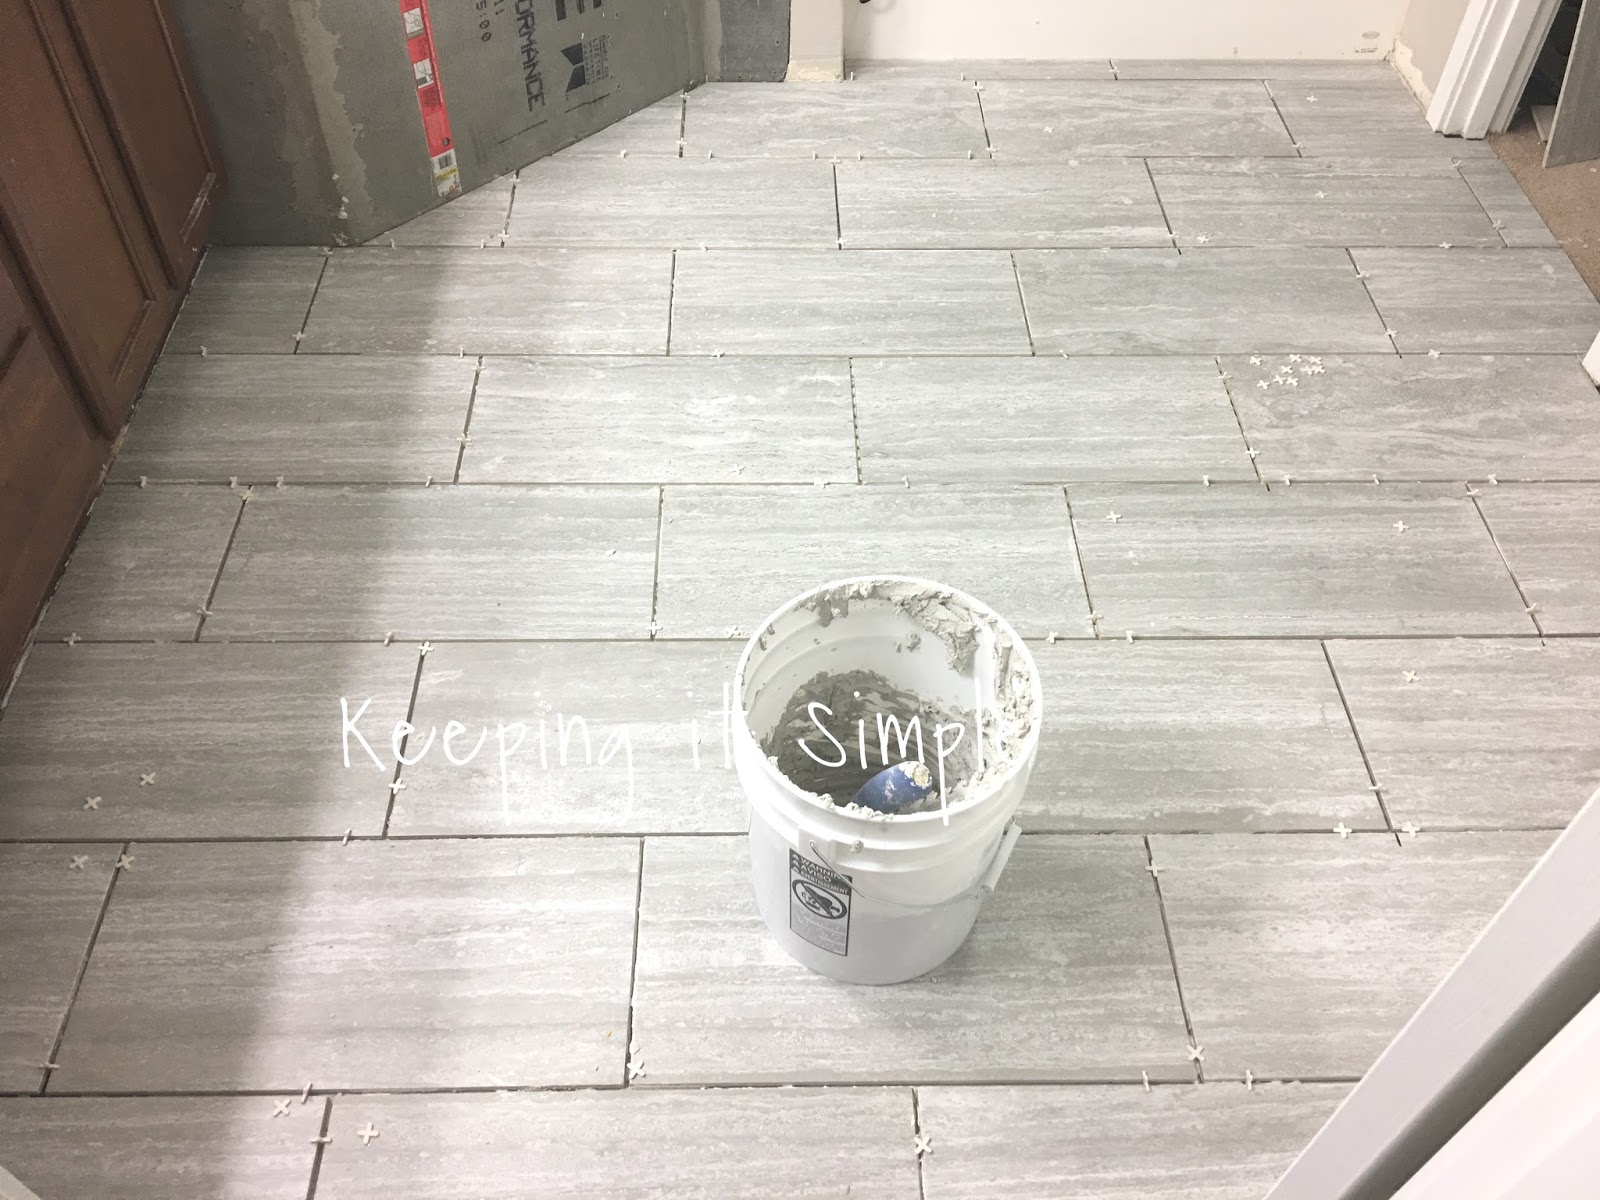 Tips On How To Install Tile Flooring In A Bathroom With Ridgemont - Installing tile floor in bathroom